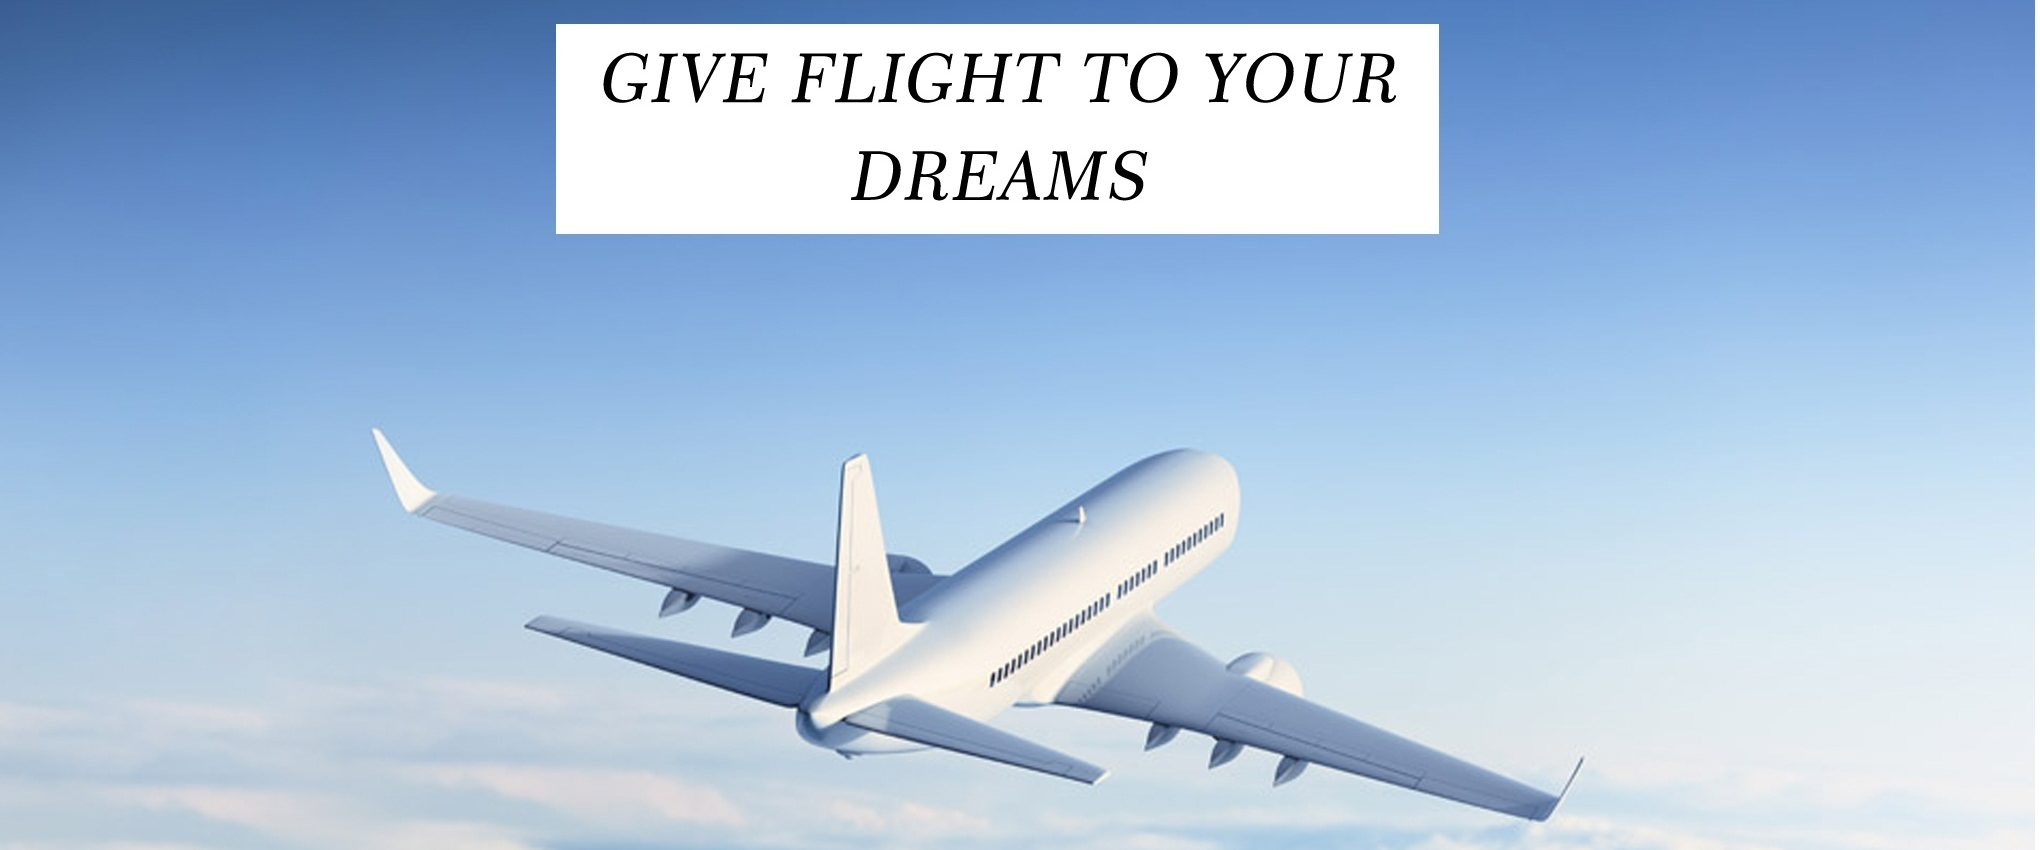 give flight to your dreams